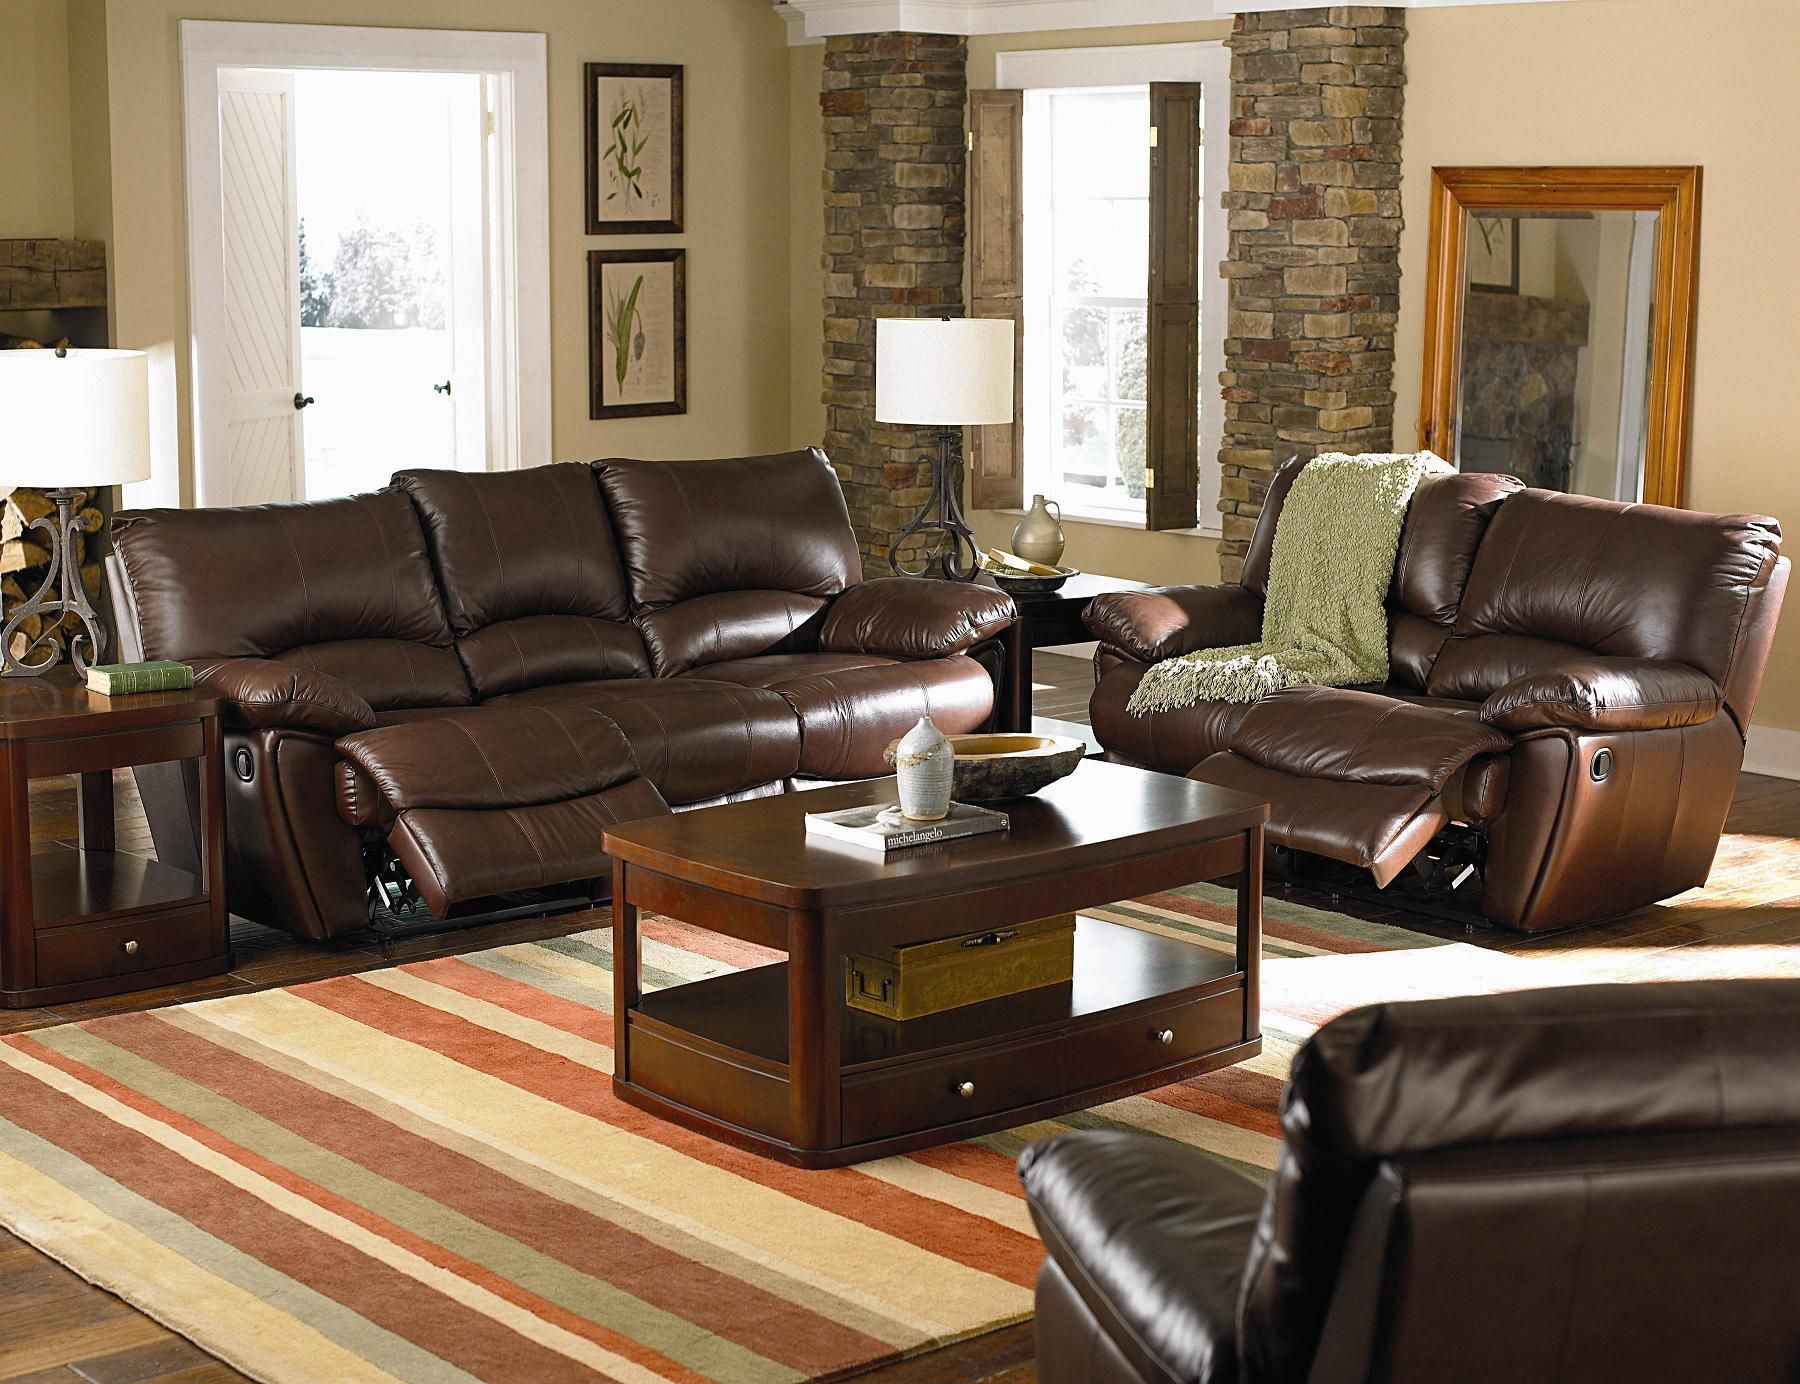 Incredible Living Room Decorated Design Idea with Wooden Floor And. Leather Living Room Furniture For Sale. Living Room Furniture Modern Living Sets 2750 Living Rooms. Ashley Furniture Living Room Antique Living Room Set